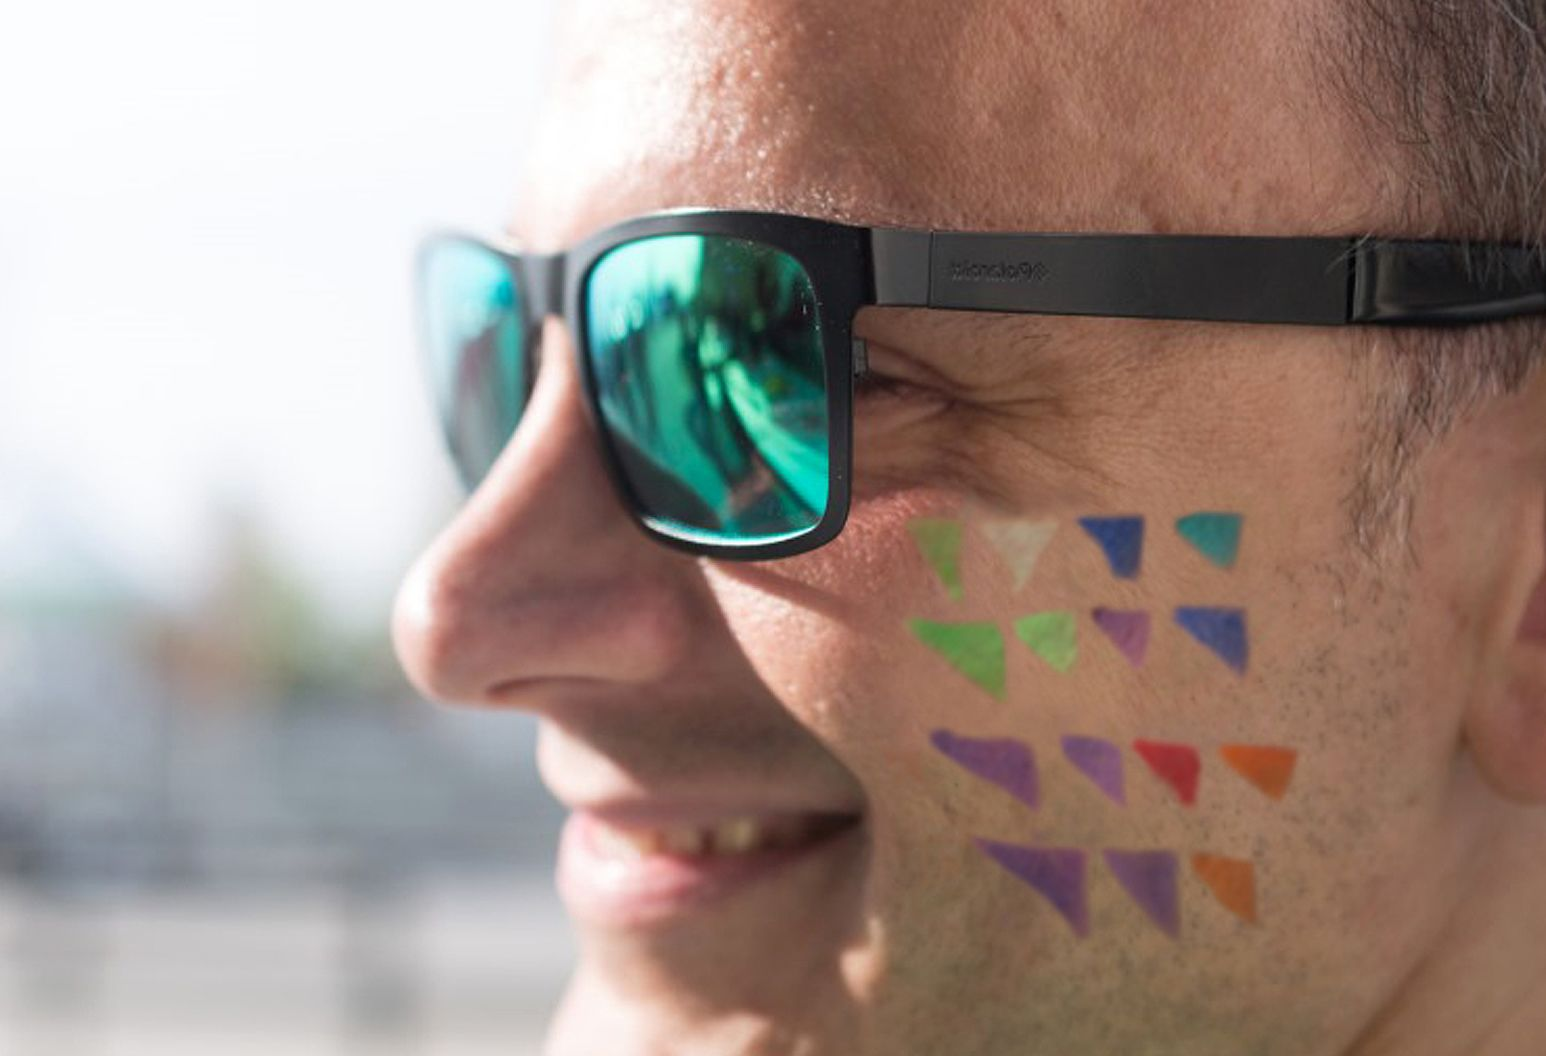 Man's face with sunglasses, Northwell logo painted on his cheek